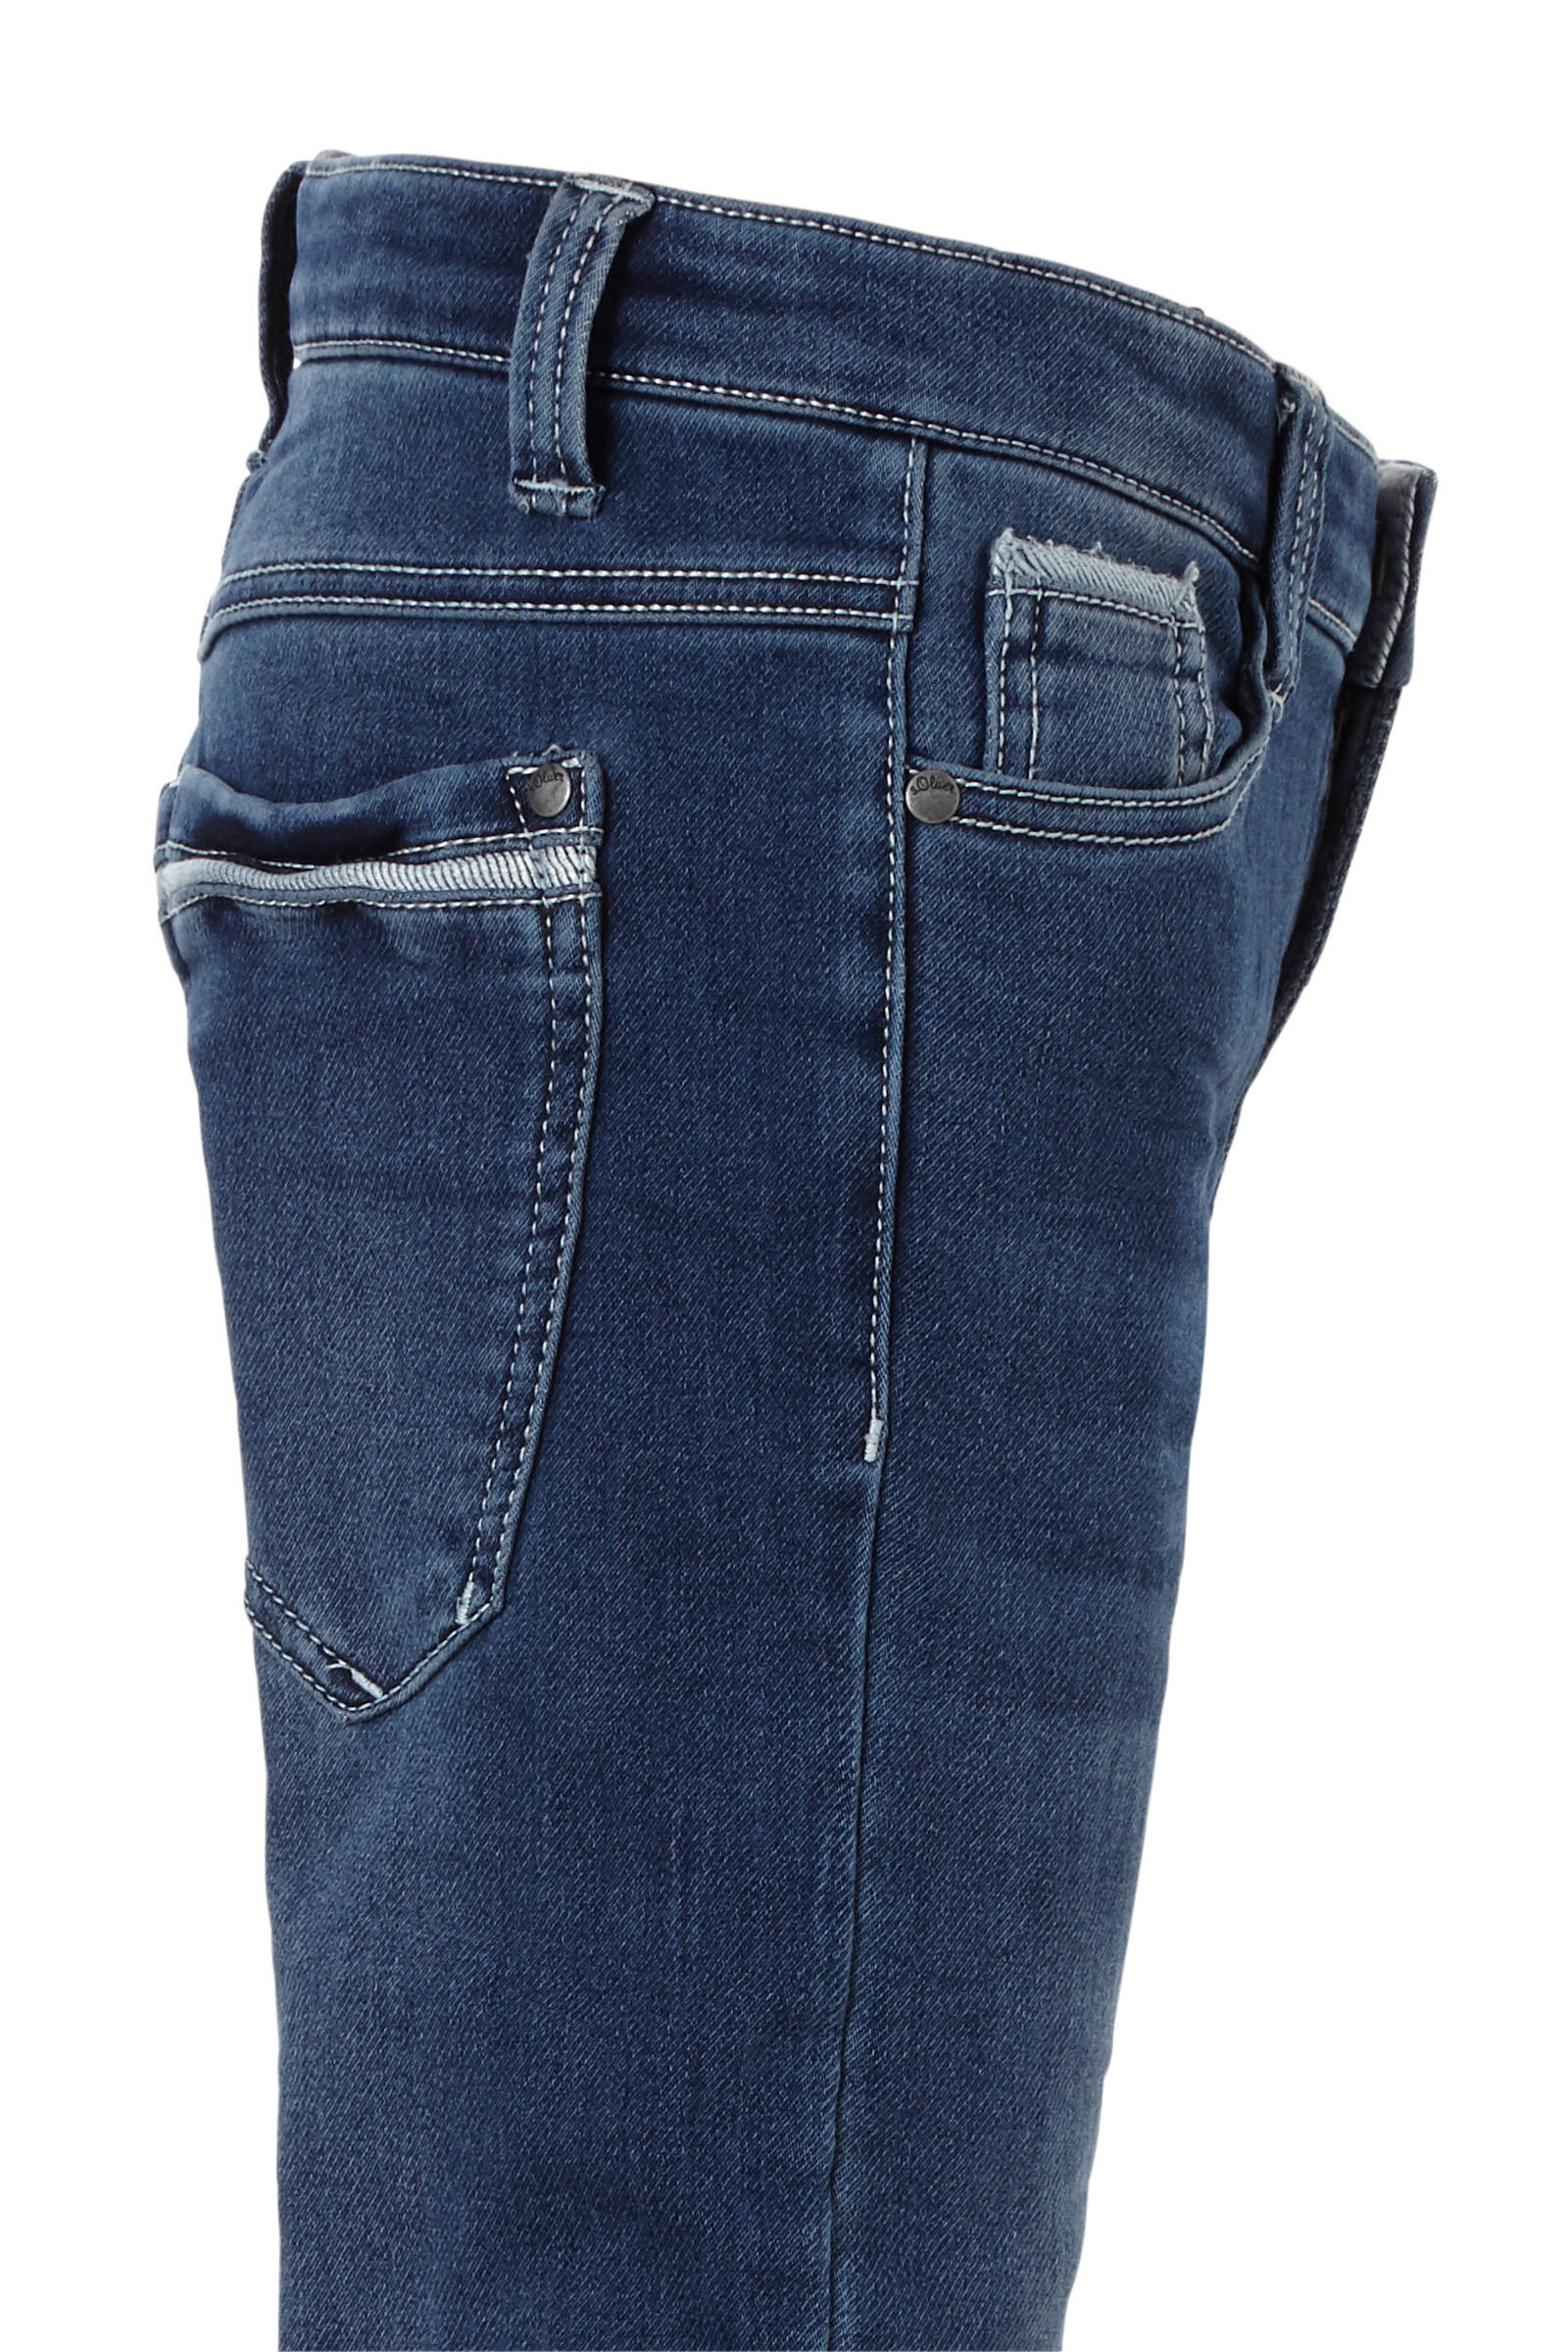 s.Oliver straight fit jeans Pelle   wehkamp